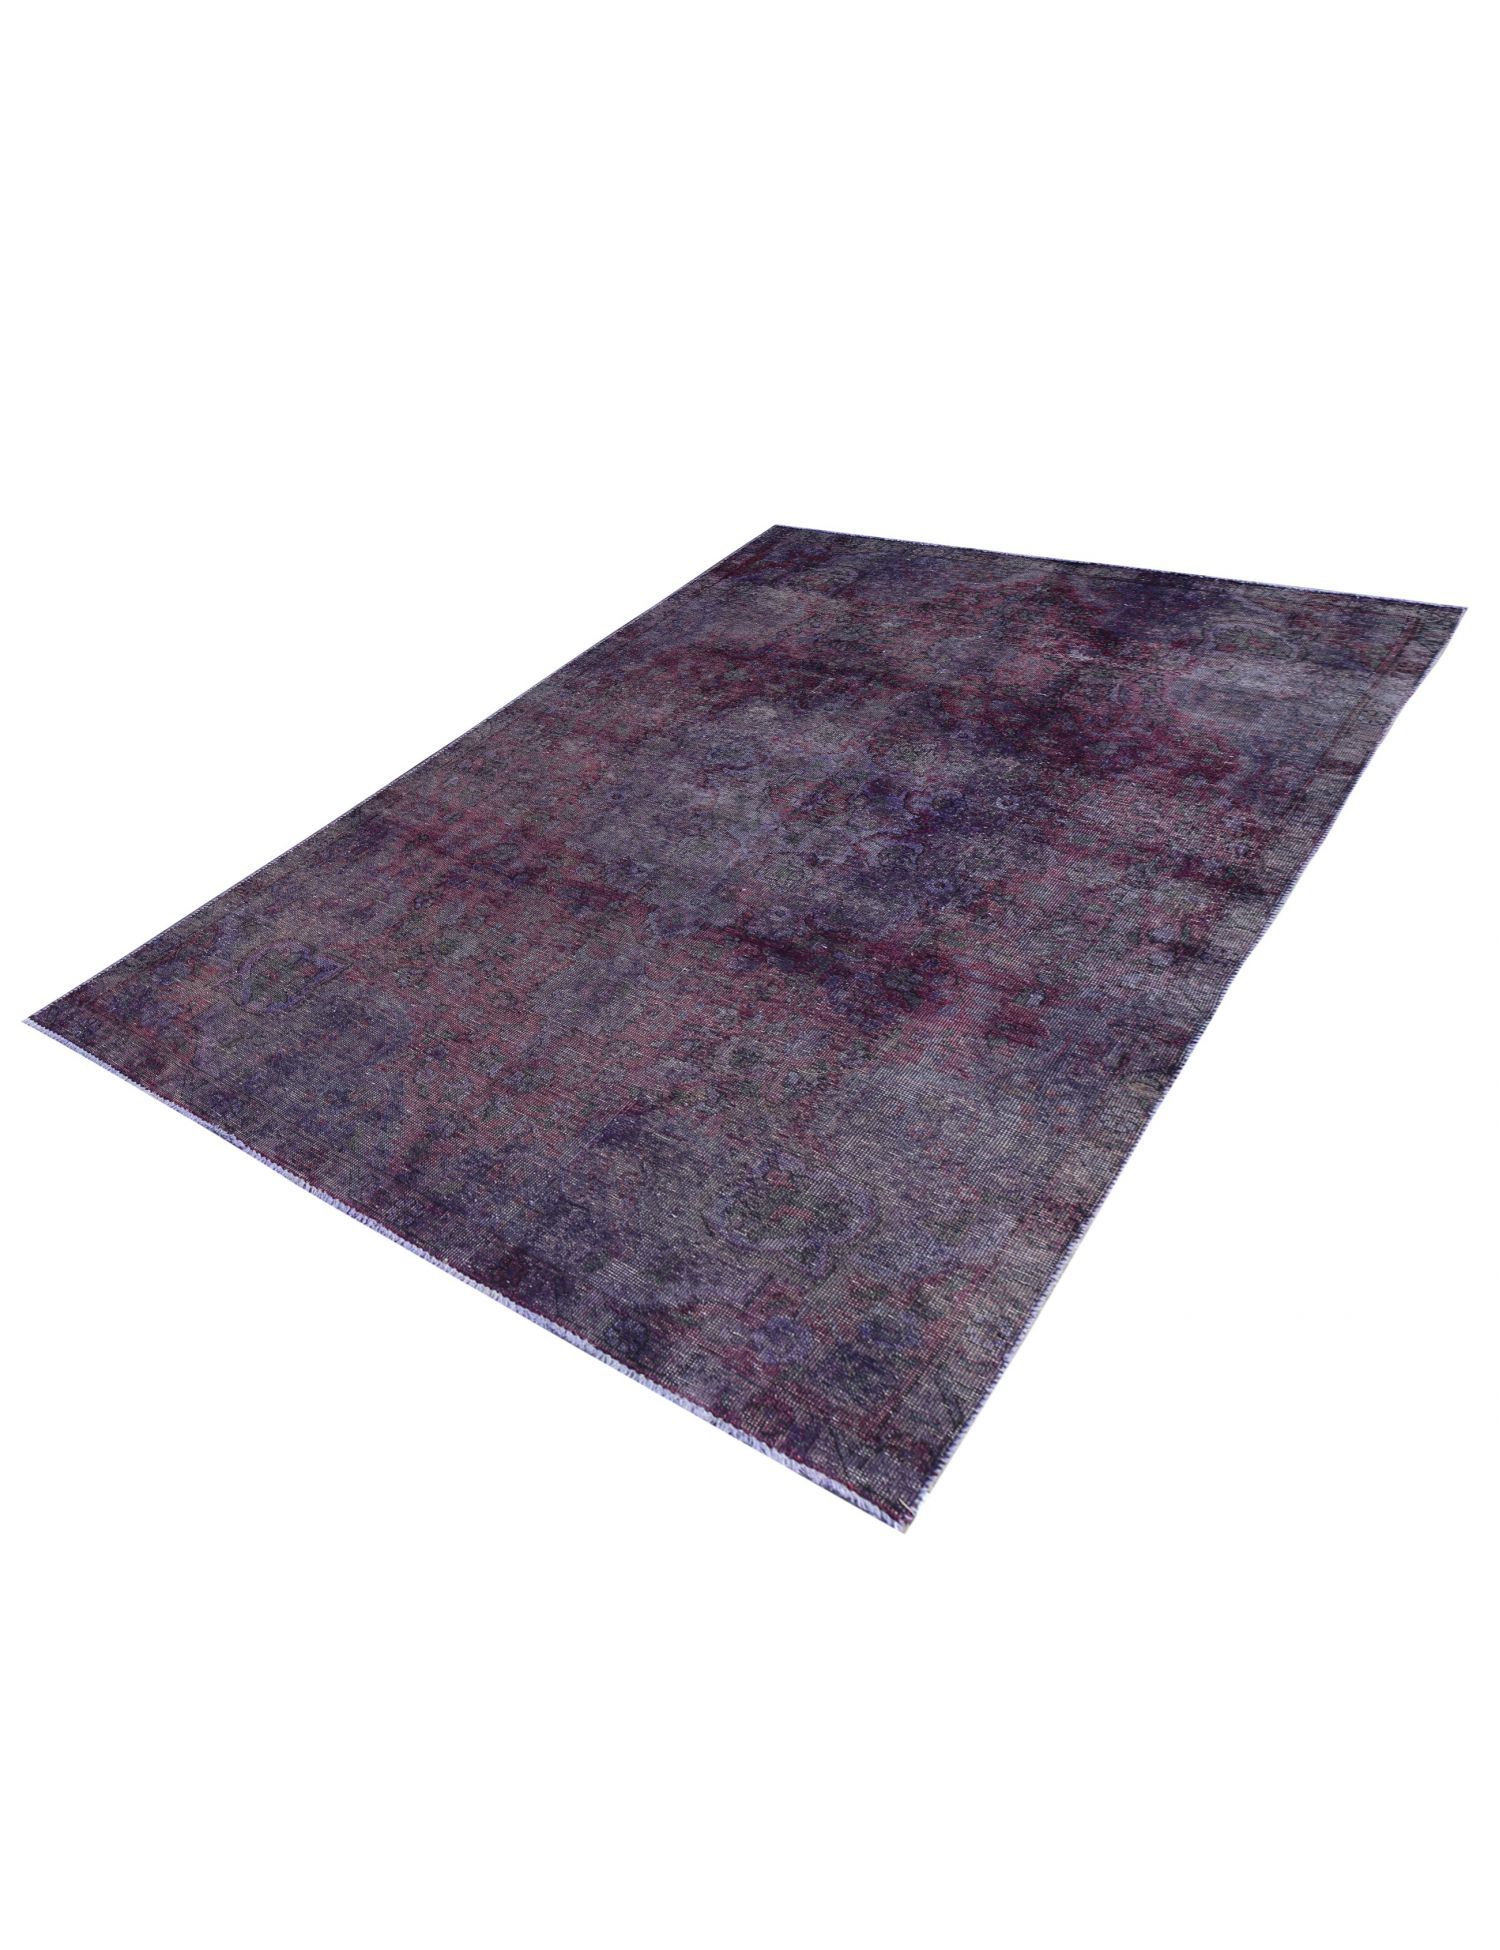 Vintage Carpet  purple <br/>252 x 155 cm